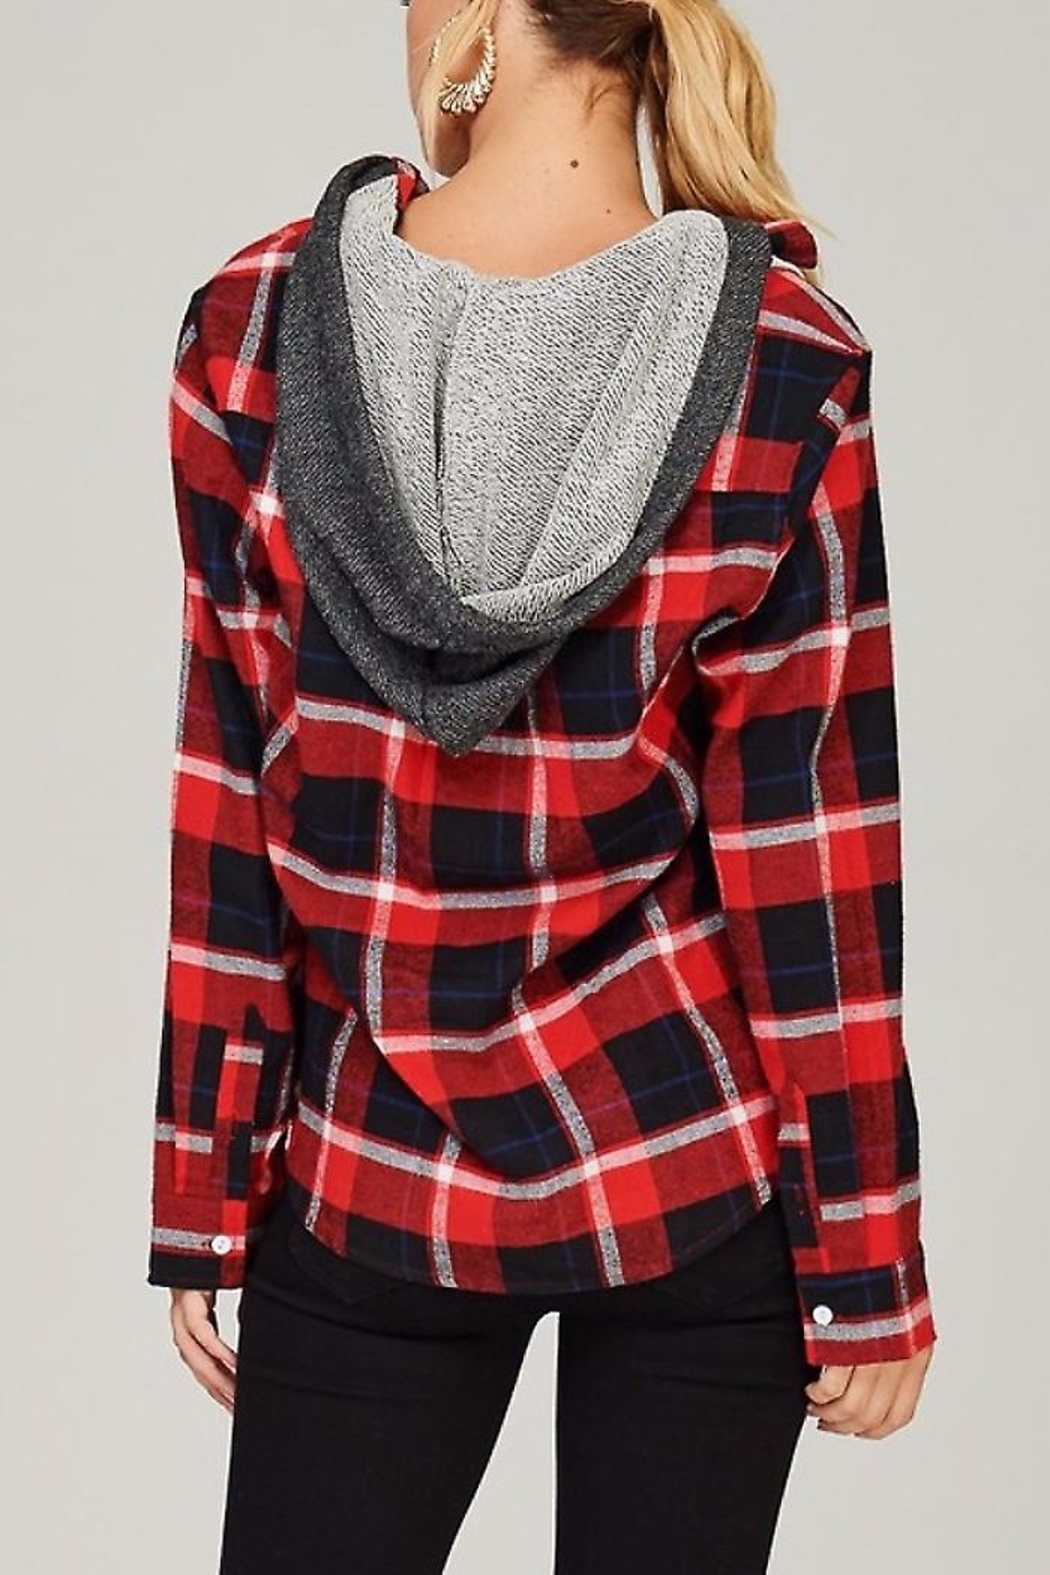 People Outfitter Flannel Hoodie Sweater - Side Cropped Image